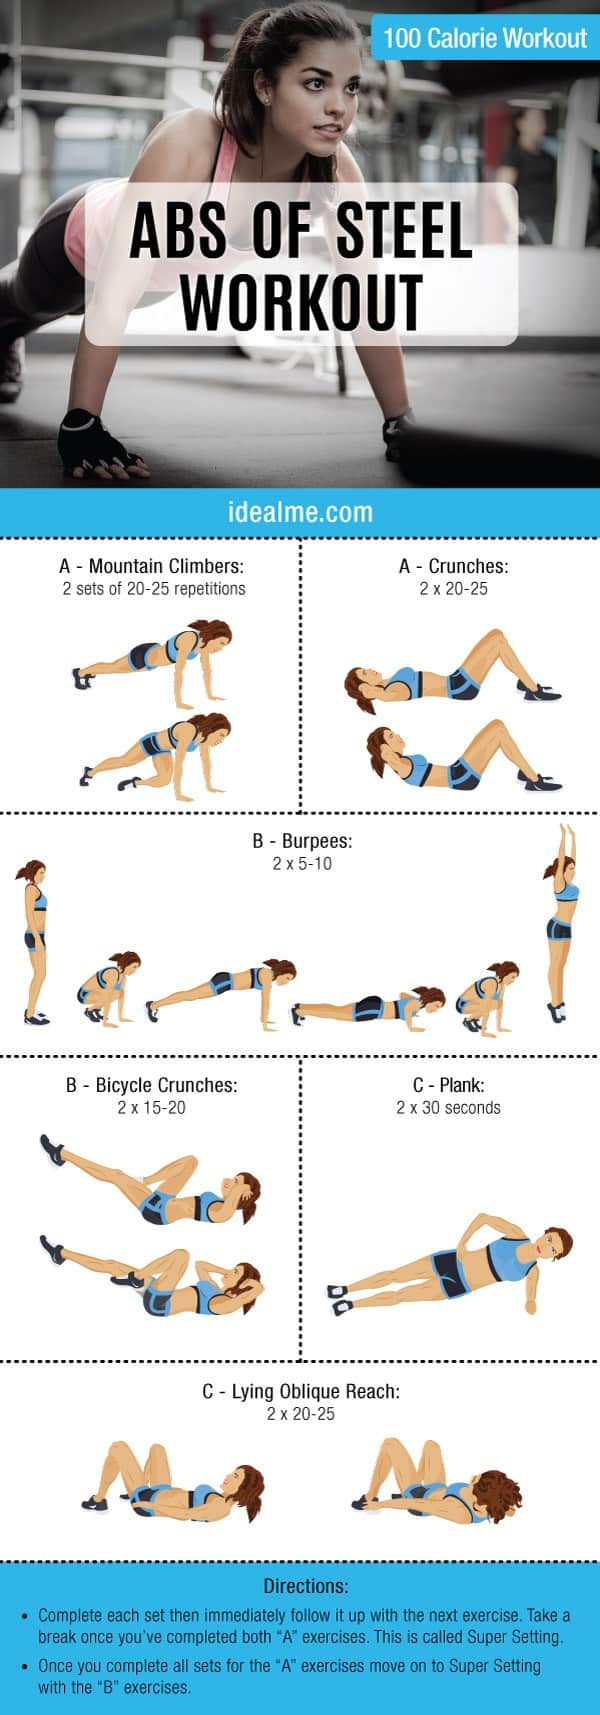 Abs Of Steel 100 Calorie Workout